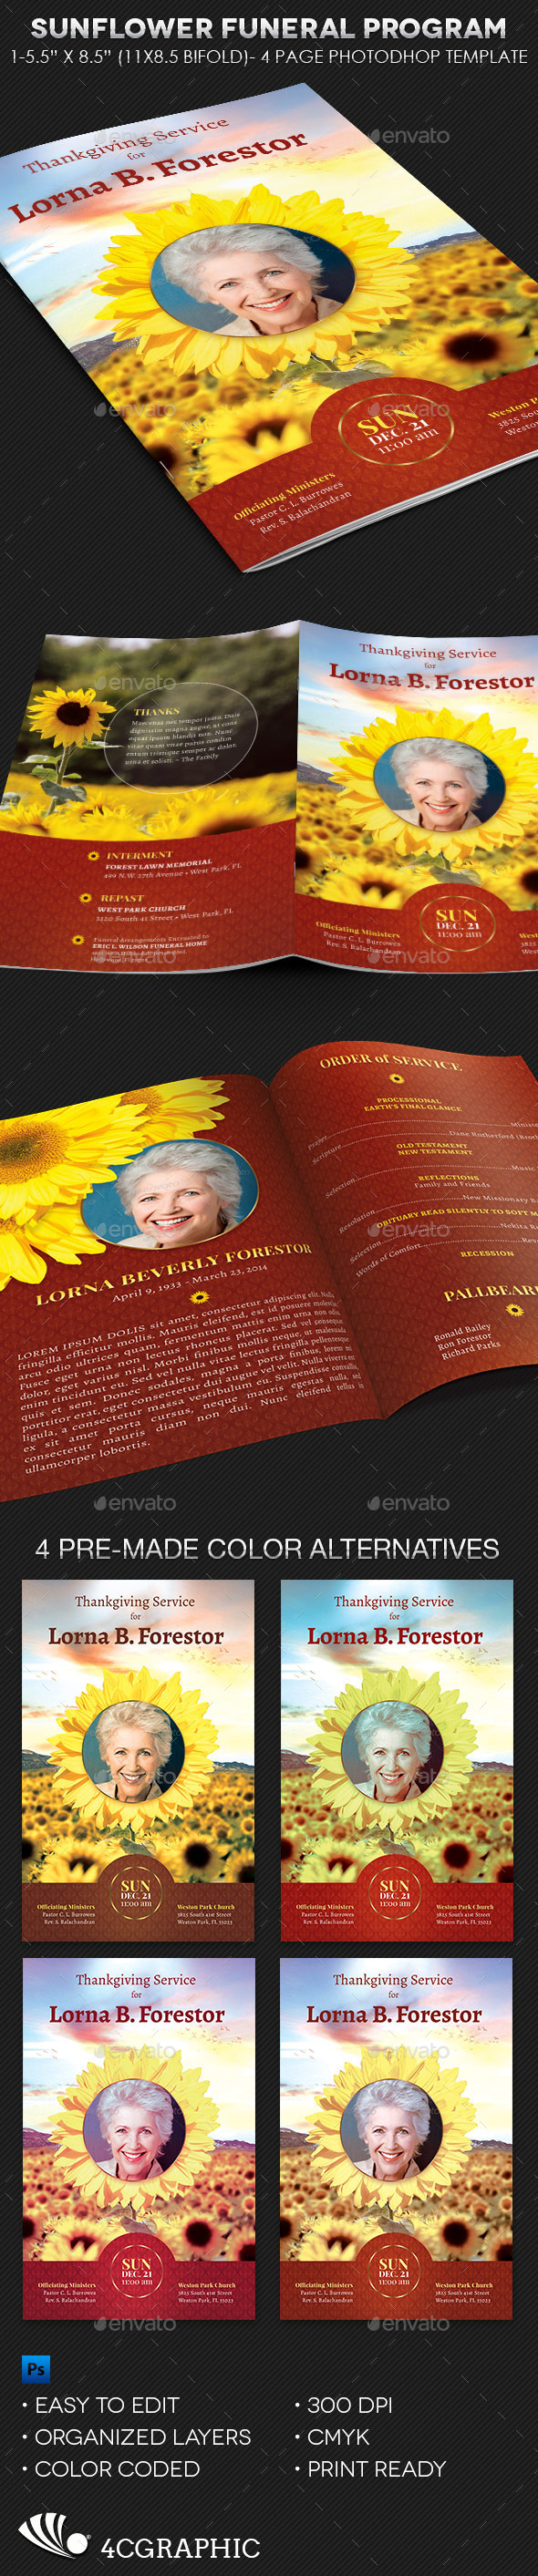 GraphicRiver Sunflower Funeral Program Template 9919010